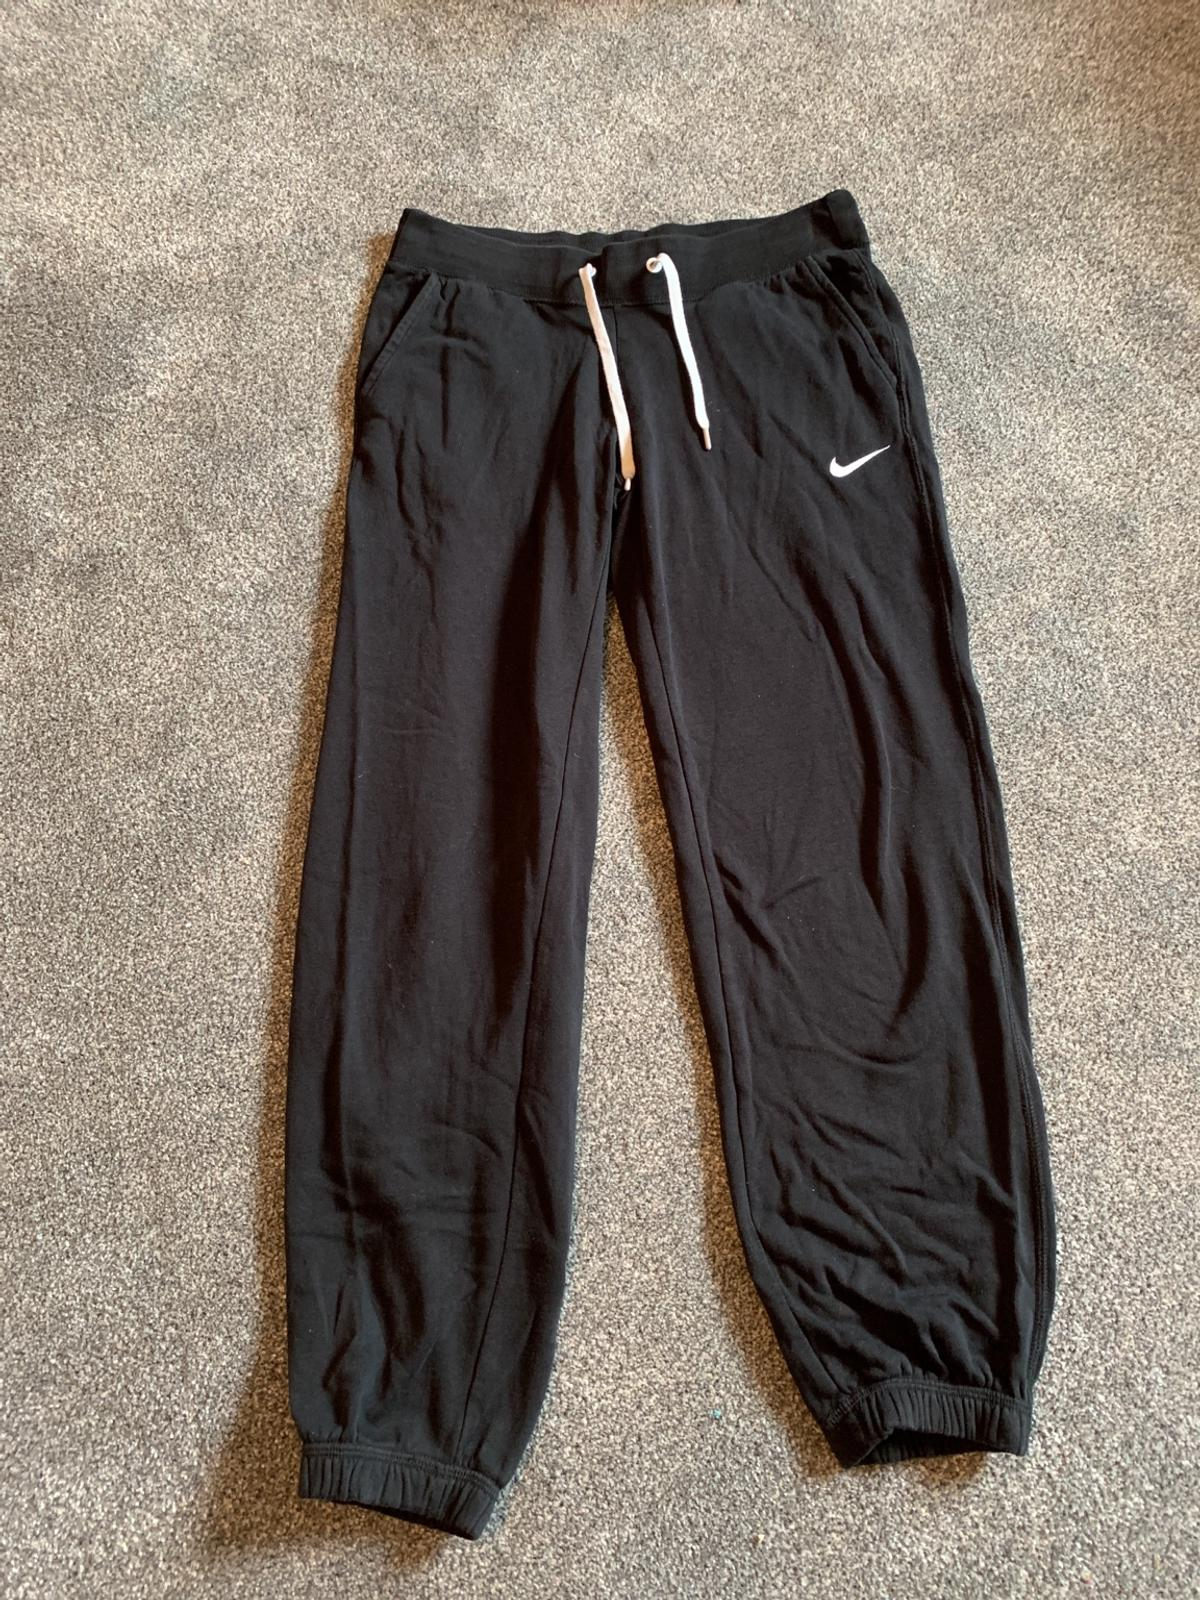 Women's Nike Jogging Bottoms in Leeds for £3.00 for sale | Shpock